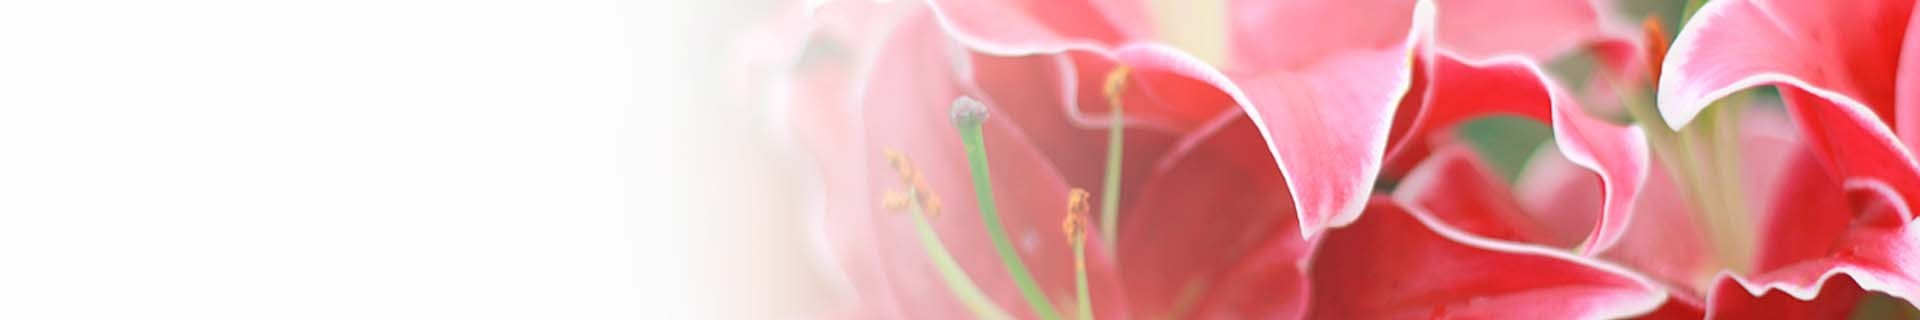 Citysens self-watering vertical planters and plant shelves special editions